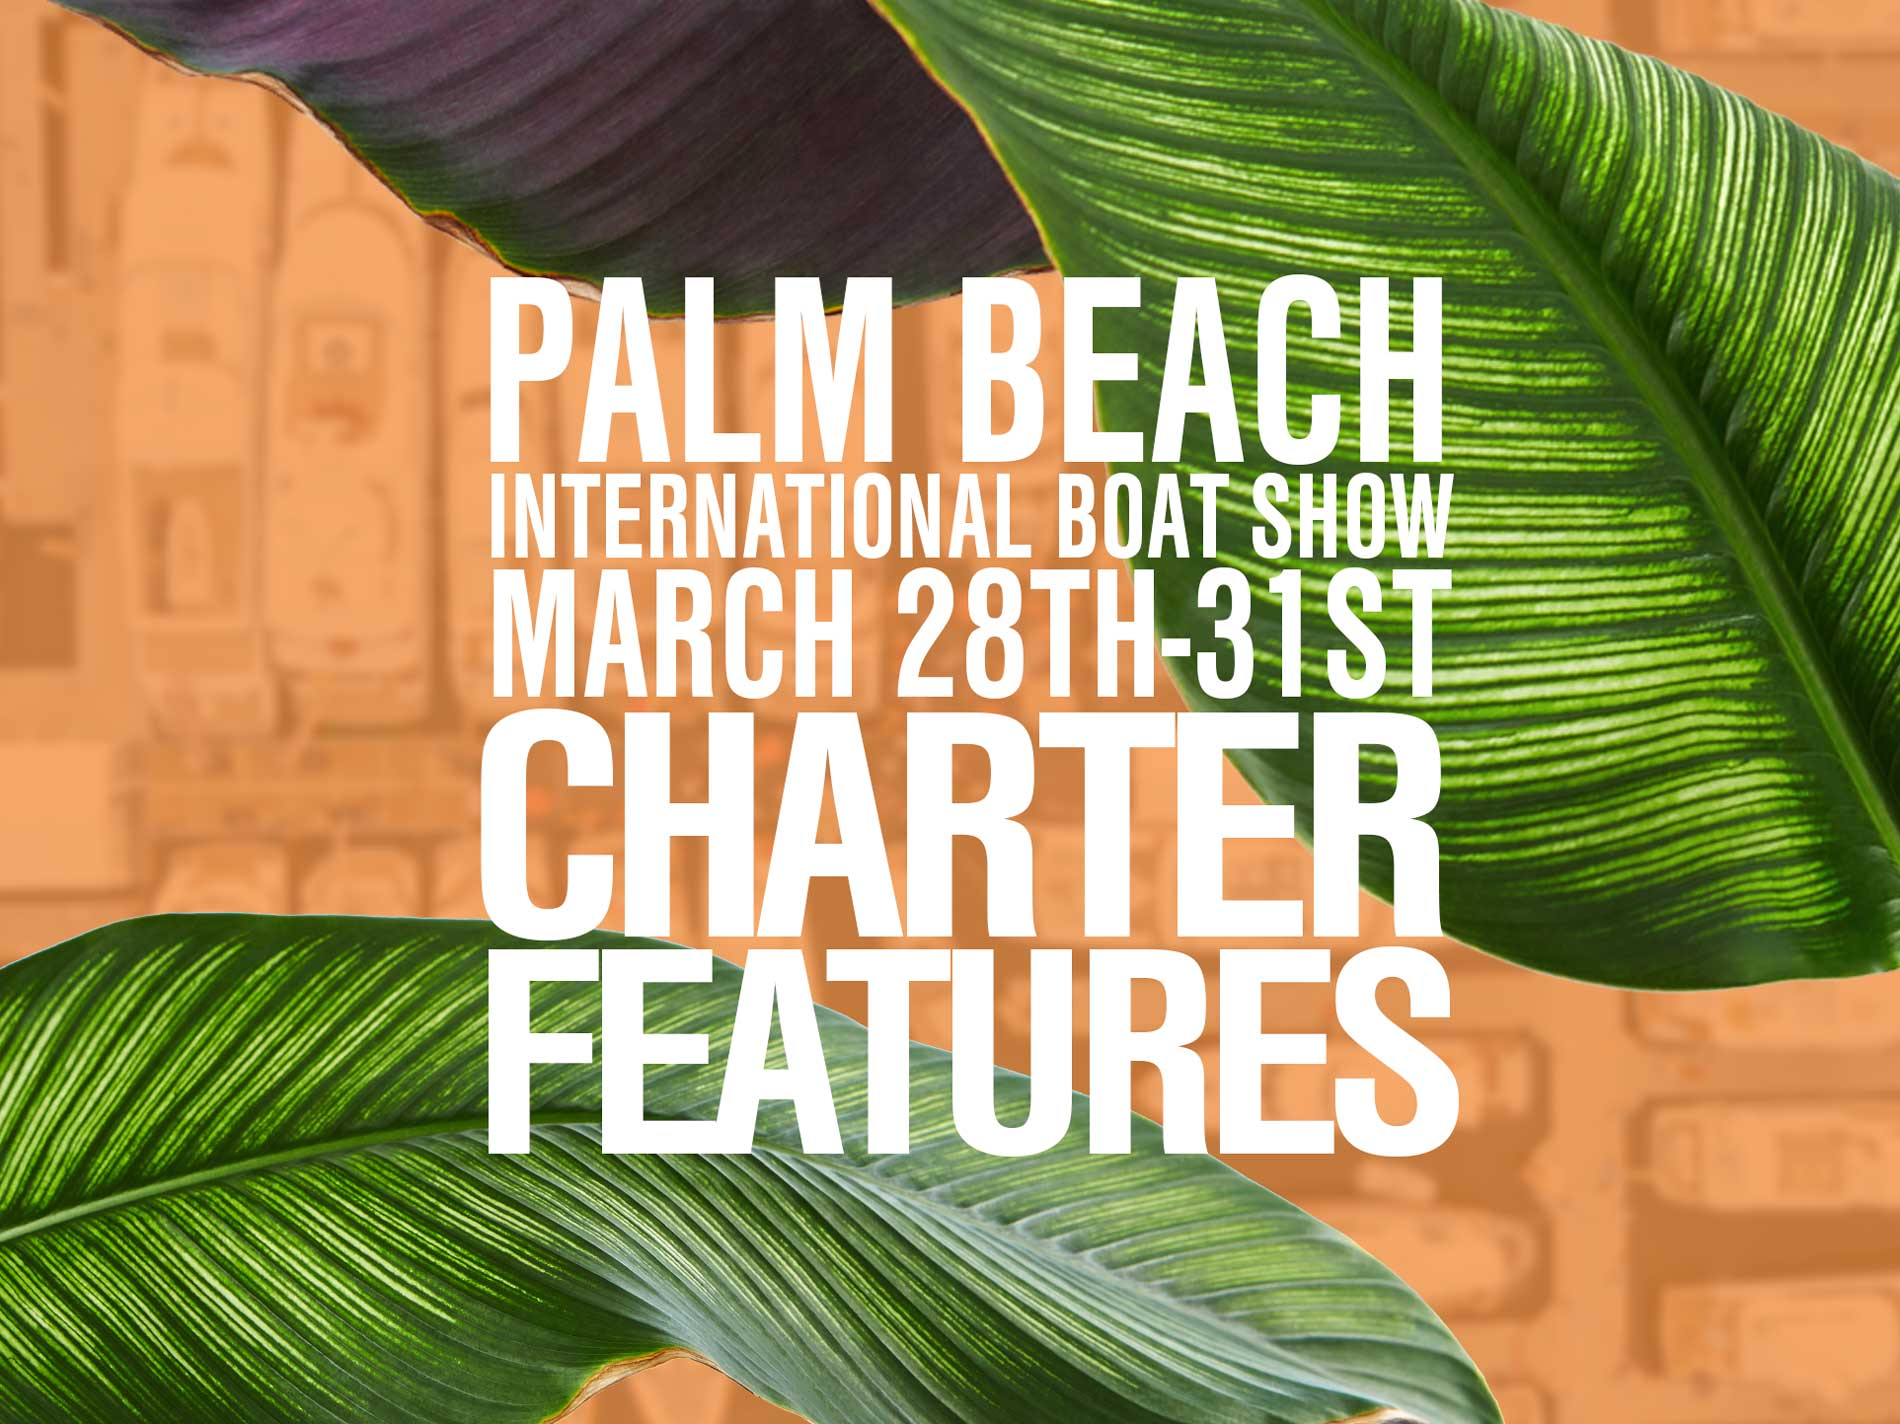 Yachts for charter AT THE 2019 PALM BEACH INTERNATIONAL BOAT SHOW MARCH 28TH THROUGH THE 31ST IN DOWNTOWN WEST PALM BEACH, FLORIDA